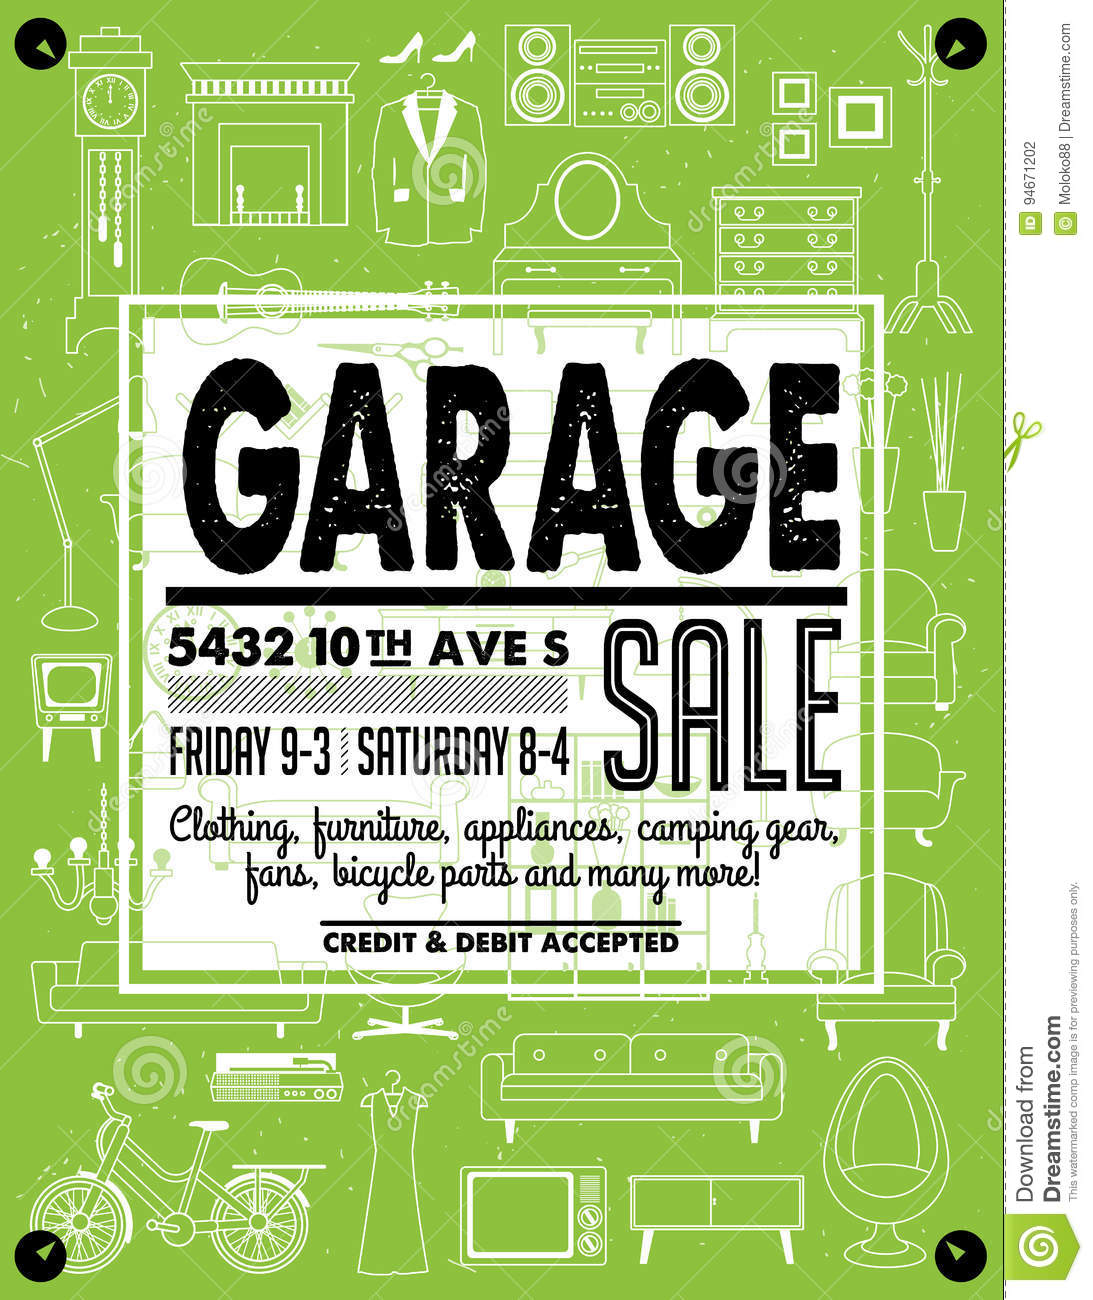 image about Printable Yard Signs known as Garage Sale Poster inventory vector. Instance of marketing